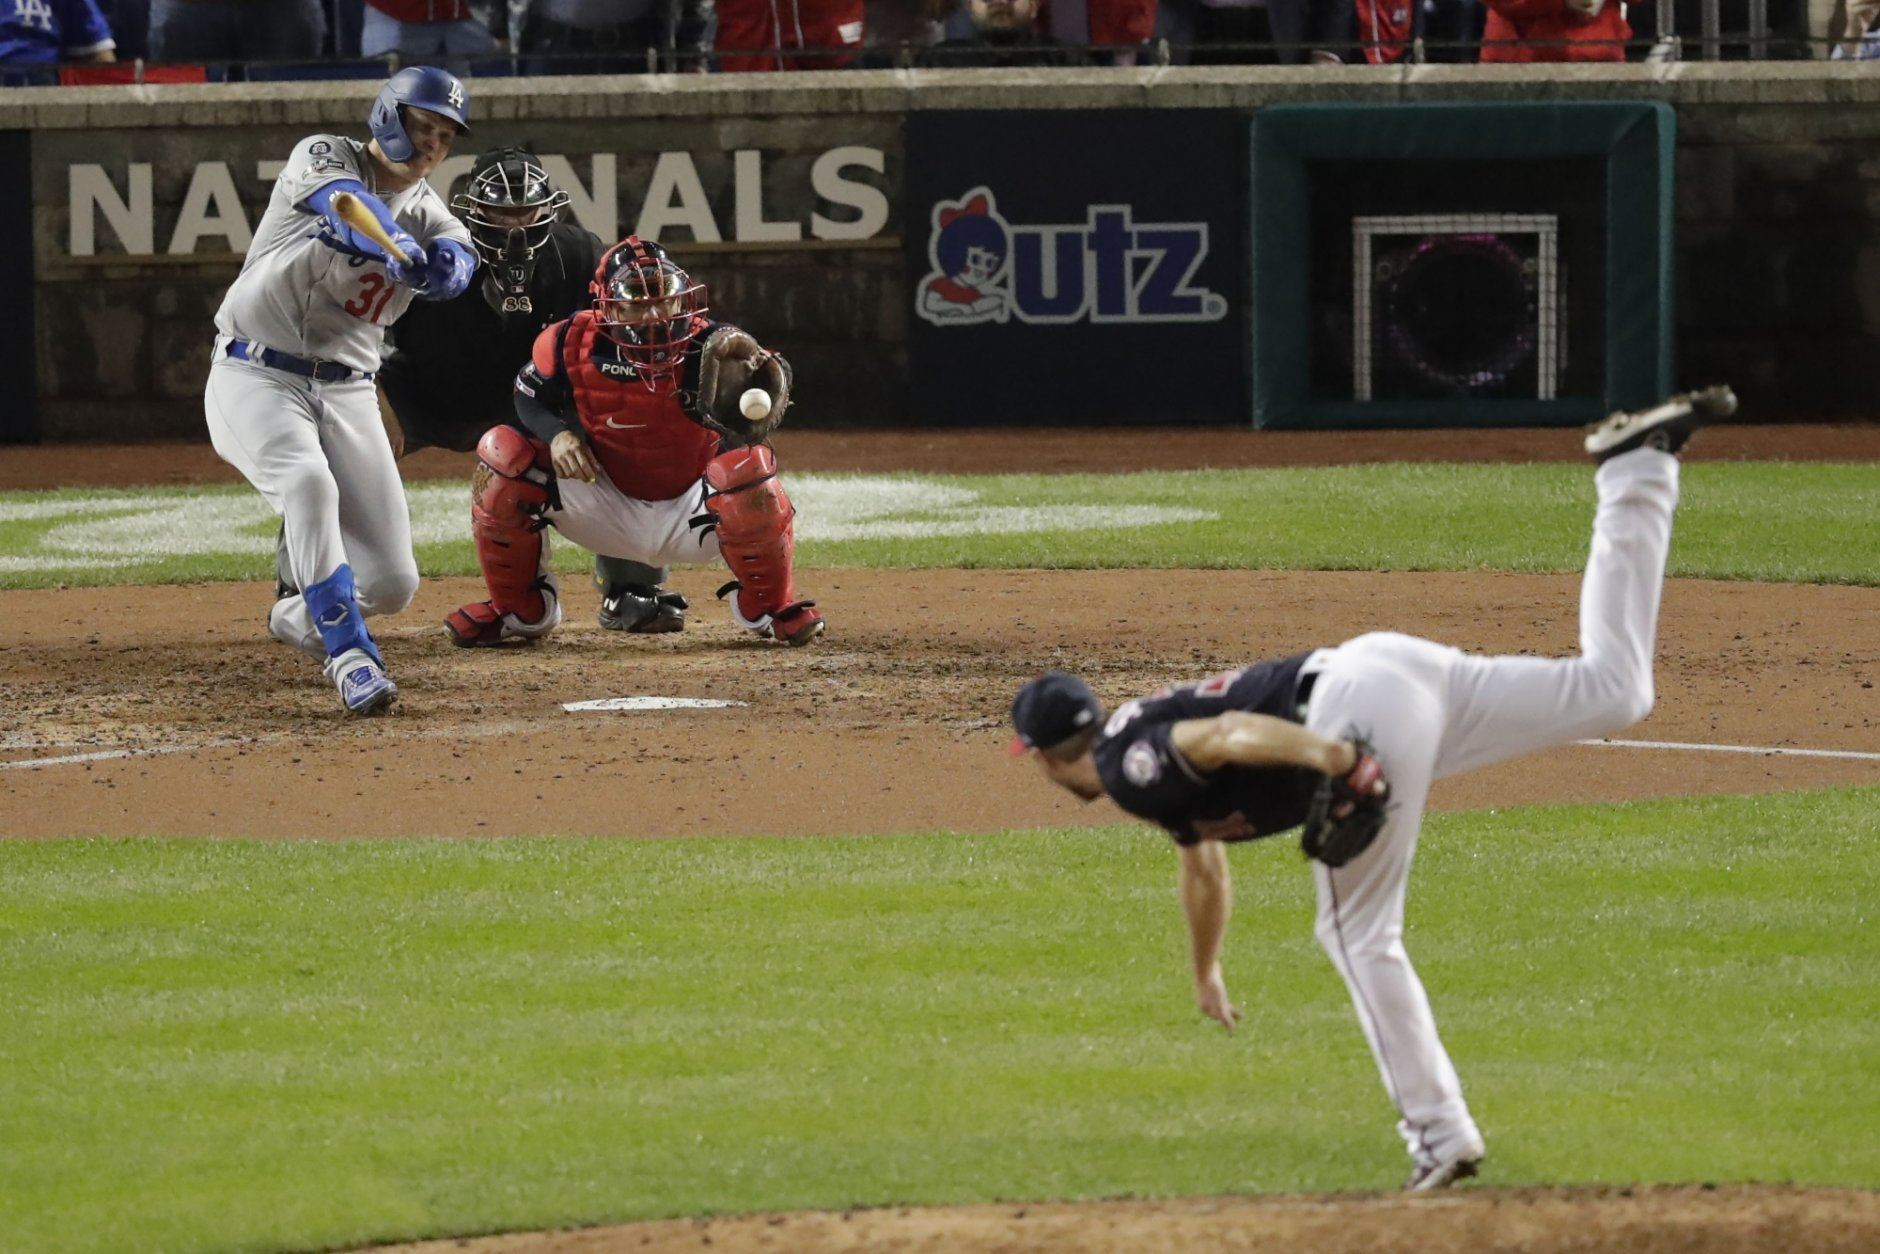 Los Angeles Dodgers' Joc Pederson, back left, strikes out swinging against Washington Nationals starting pitcher Max Scherzer, right, during the fifth inning in Game 4 of a baseball National League Division Series, Monday, Oct. 7, 2019, in Washington. Nationals catcher Kurt Suzuki, back right, and umpire Doug Eddings, back center, look on. (AP Photo/Julio Cortez)